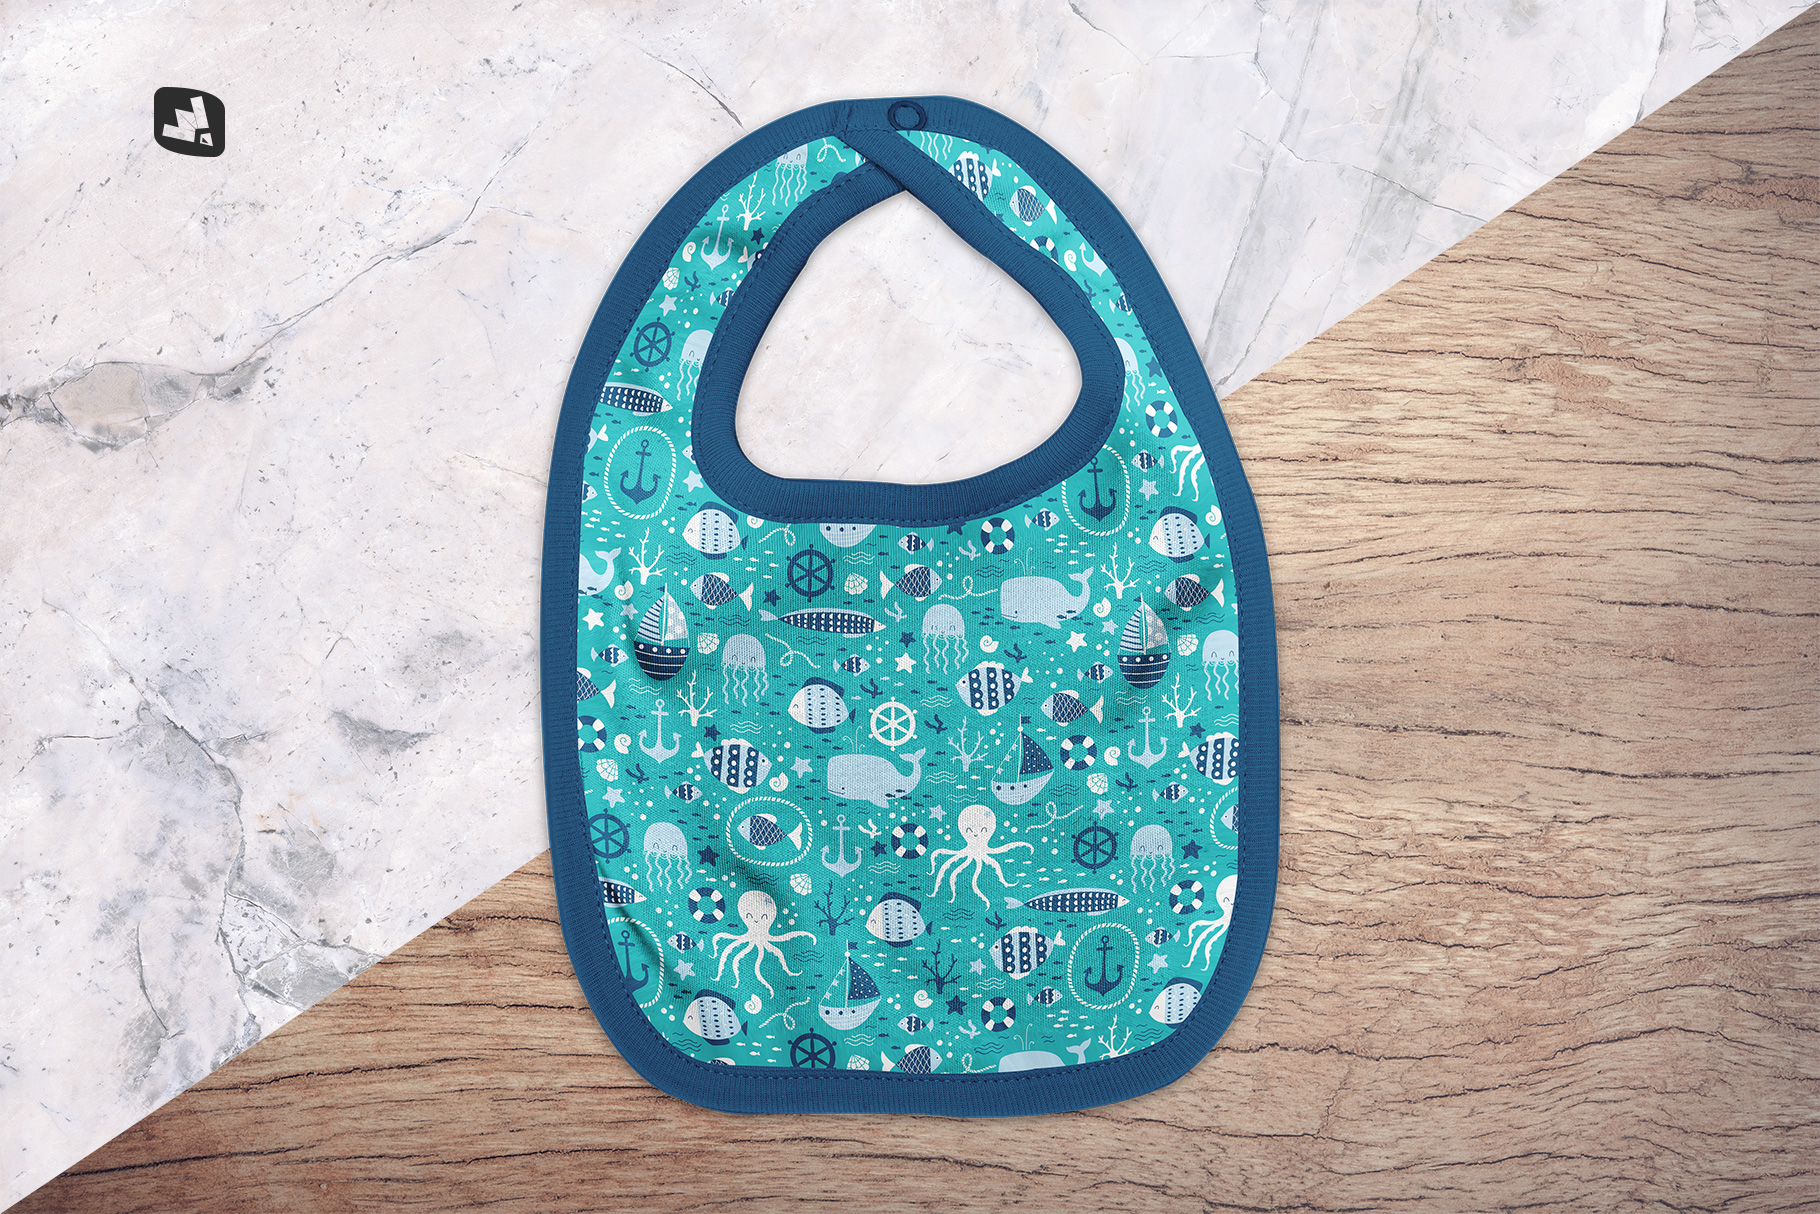 background options of the top view baby bib mockup